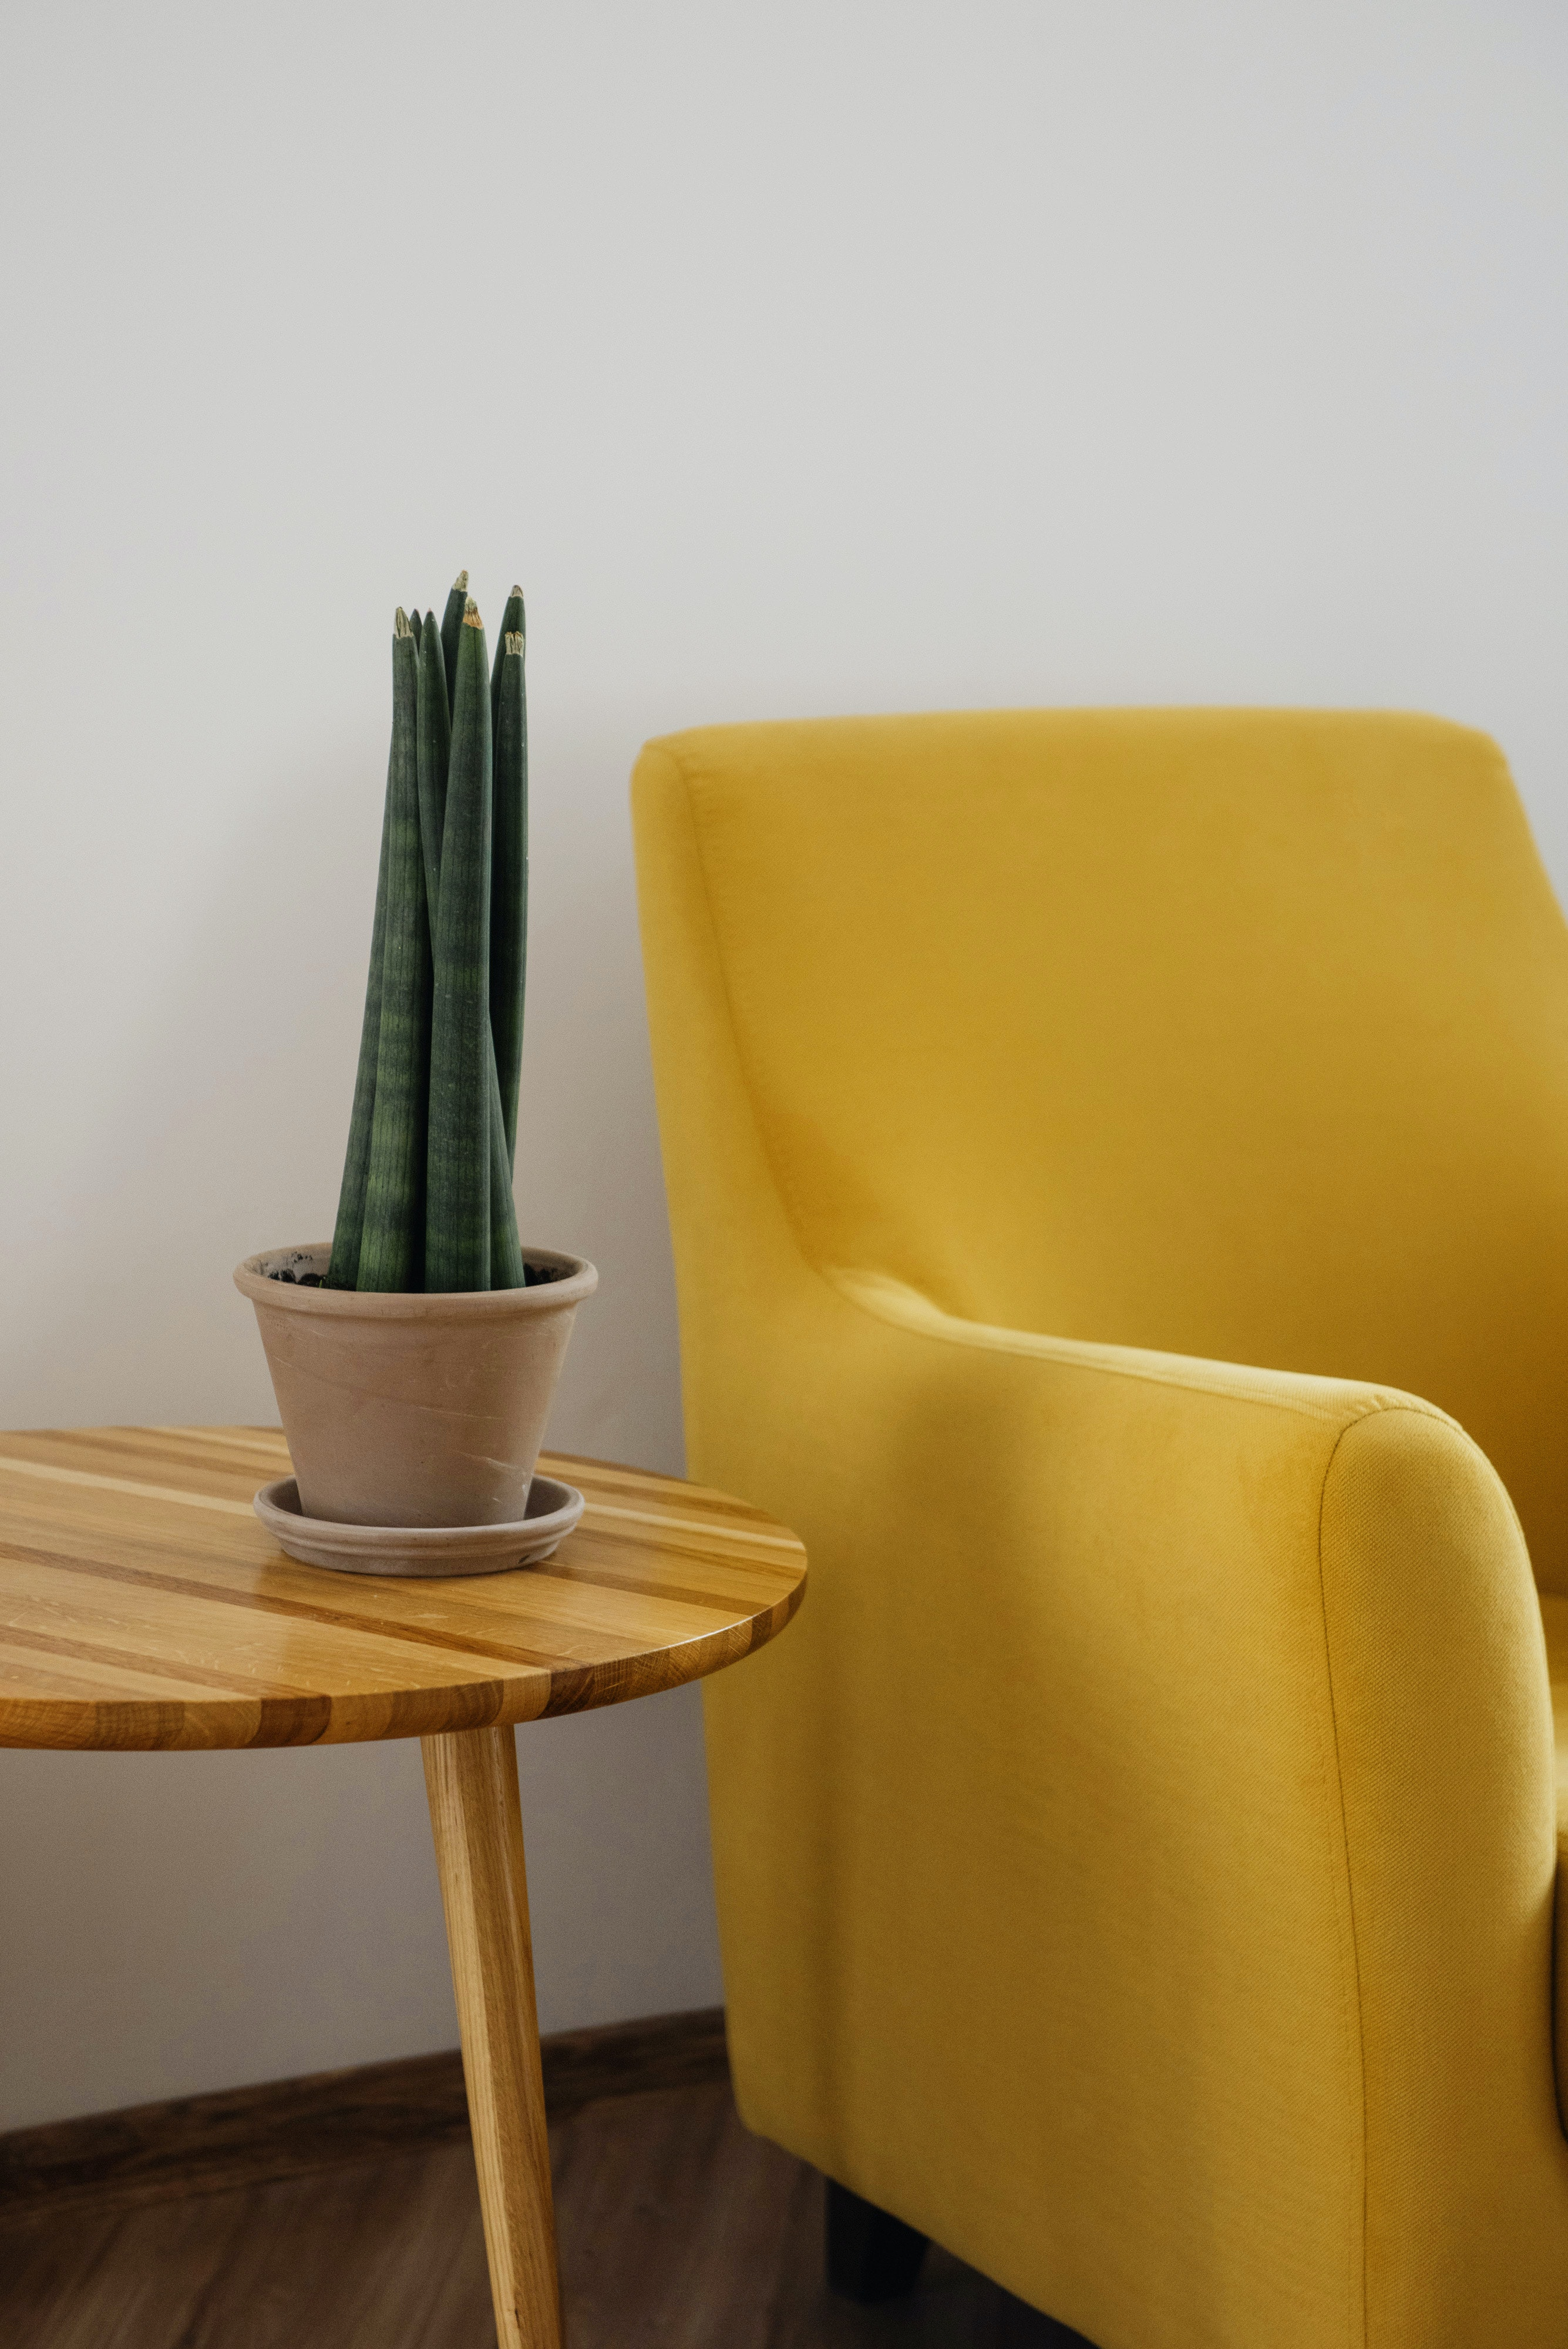 a photograph of a bright yellow chair next to a plant on a table